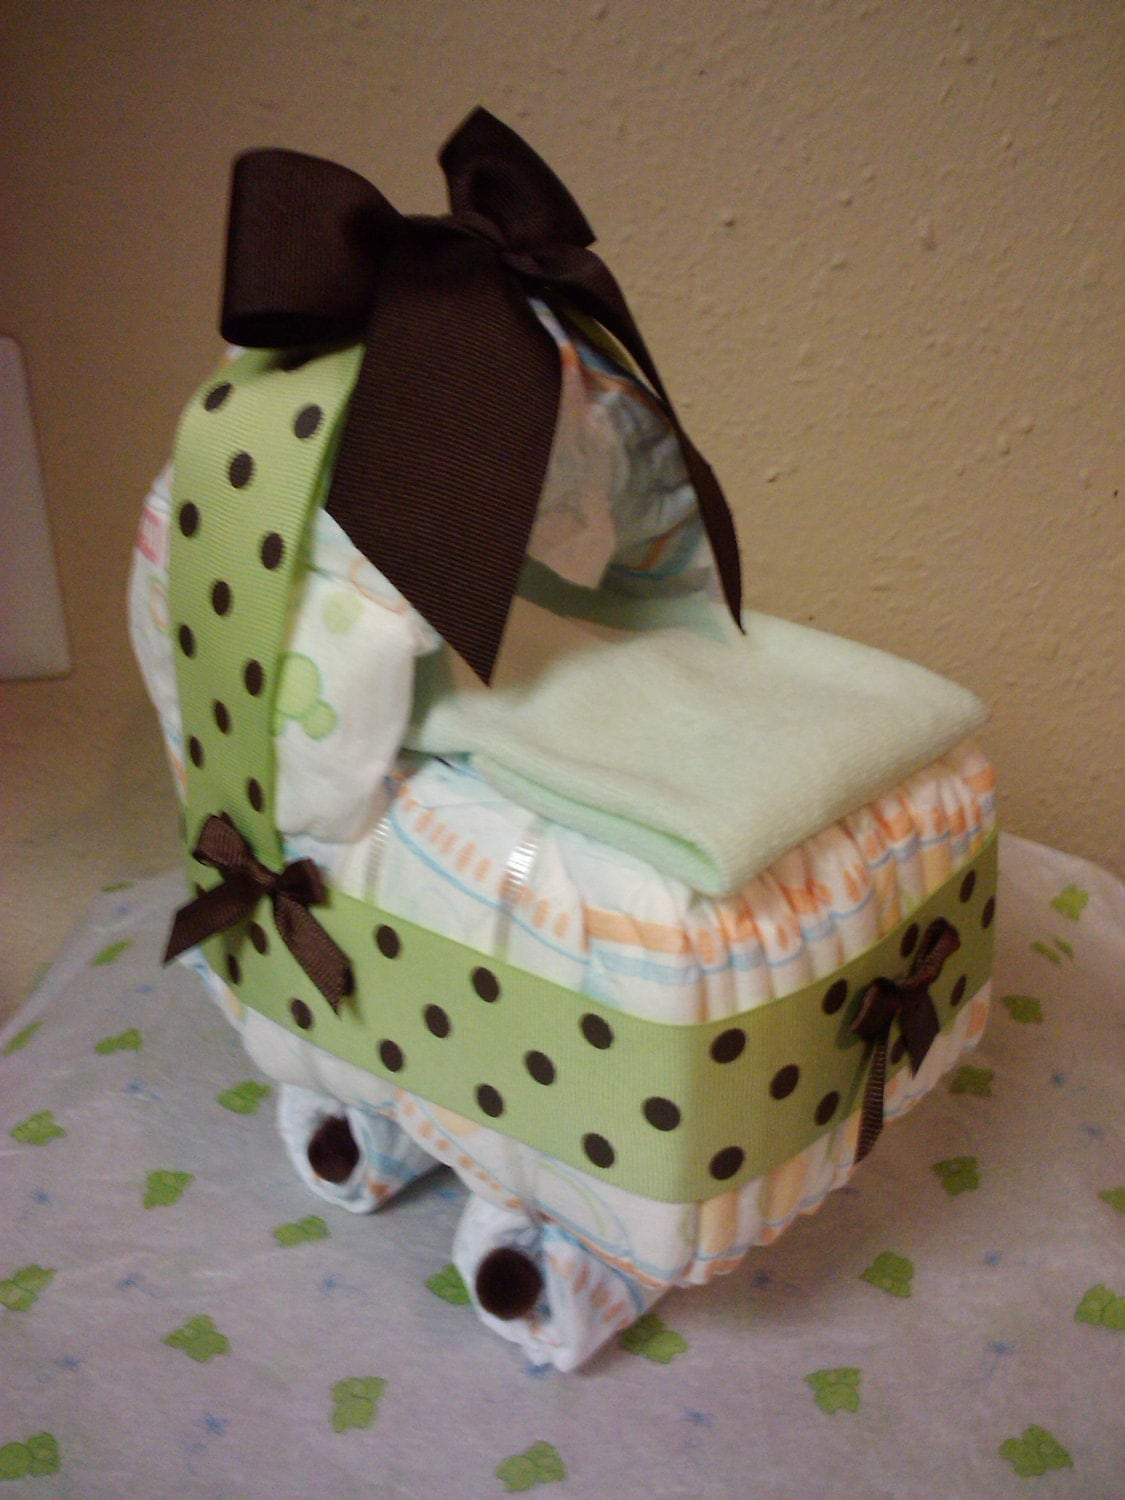 Green brown diaper bassinet baby shower present decor for Baby shower diaper decoration